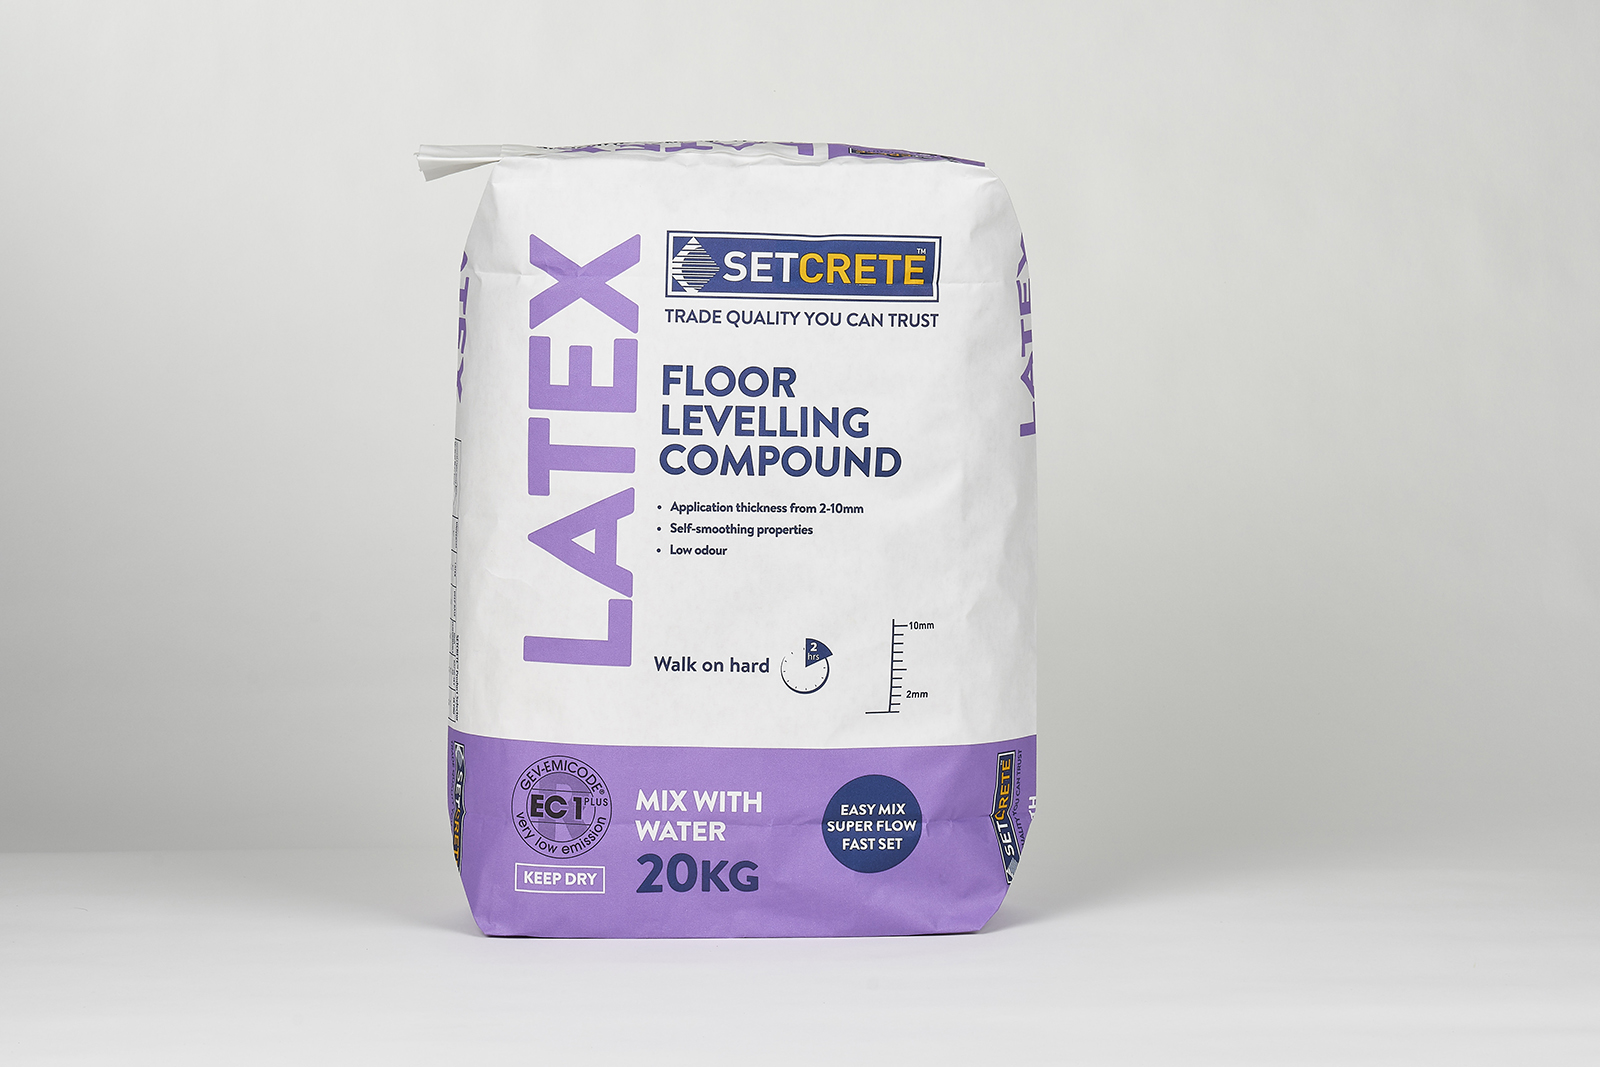 Setcrete Latex proves popular choice for builders